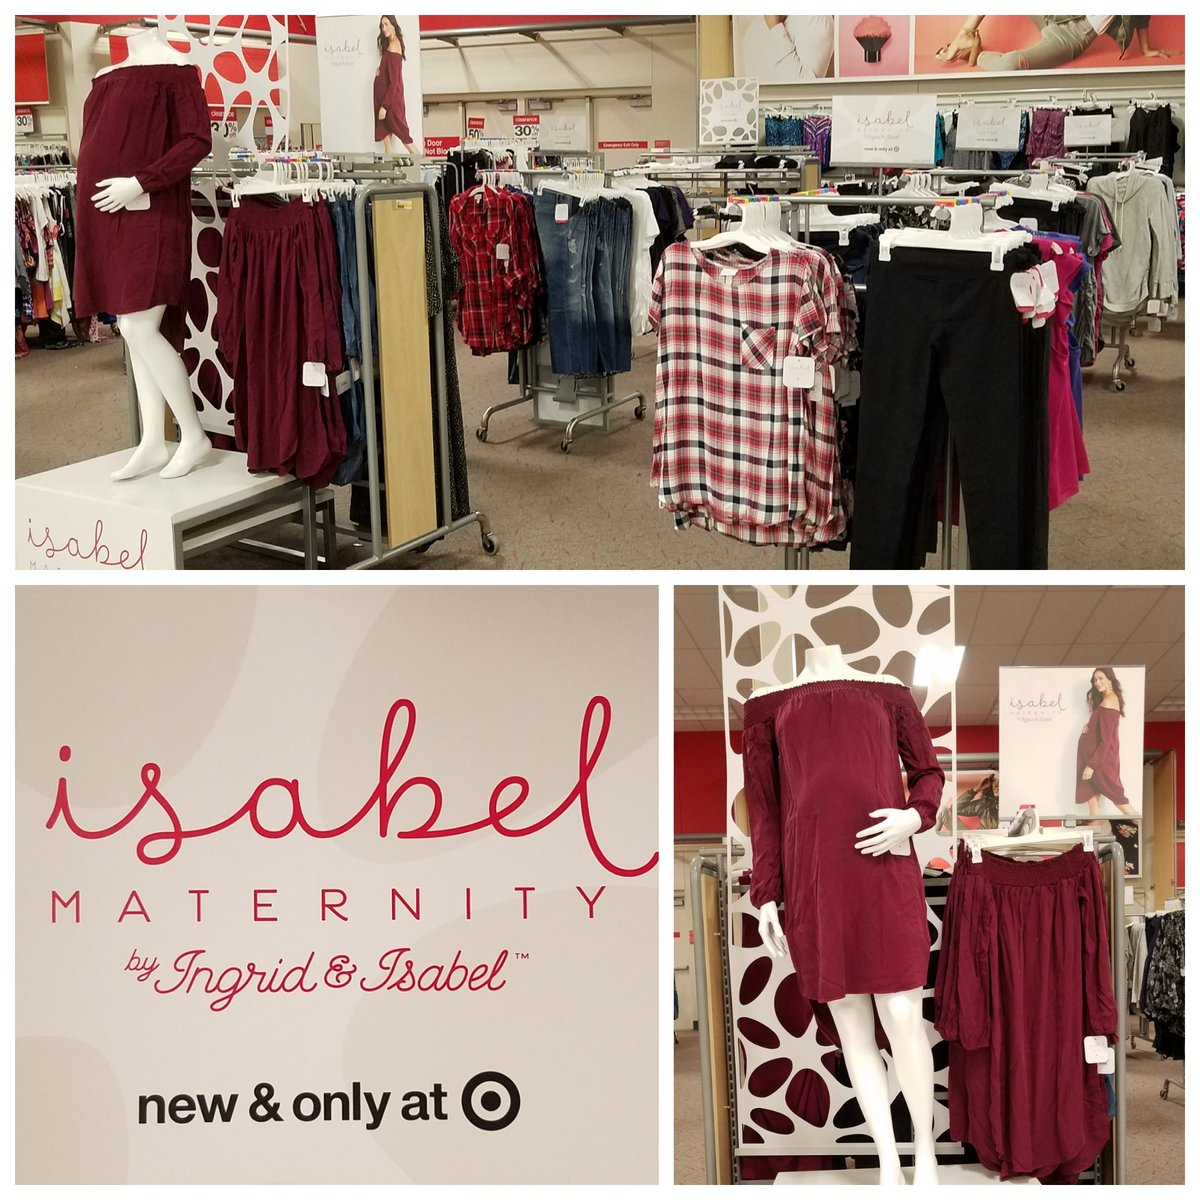 Isabel Maternity has arrived at League City! Come check out this Target exclusive, fashion forward brand! #T2320ModelStore #isabelmaternity<br>http://pic.twitter.com/mJ7mHjhM6l